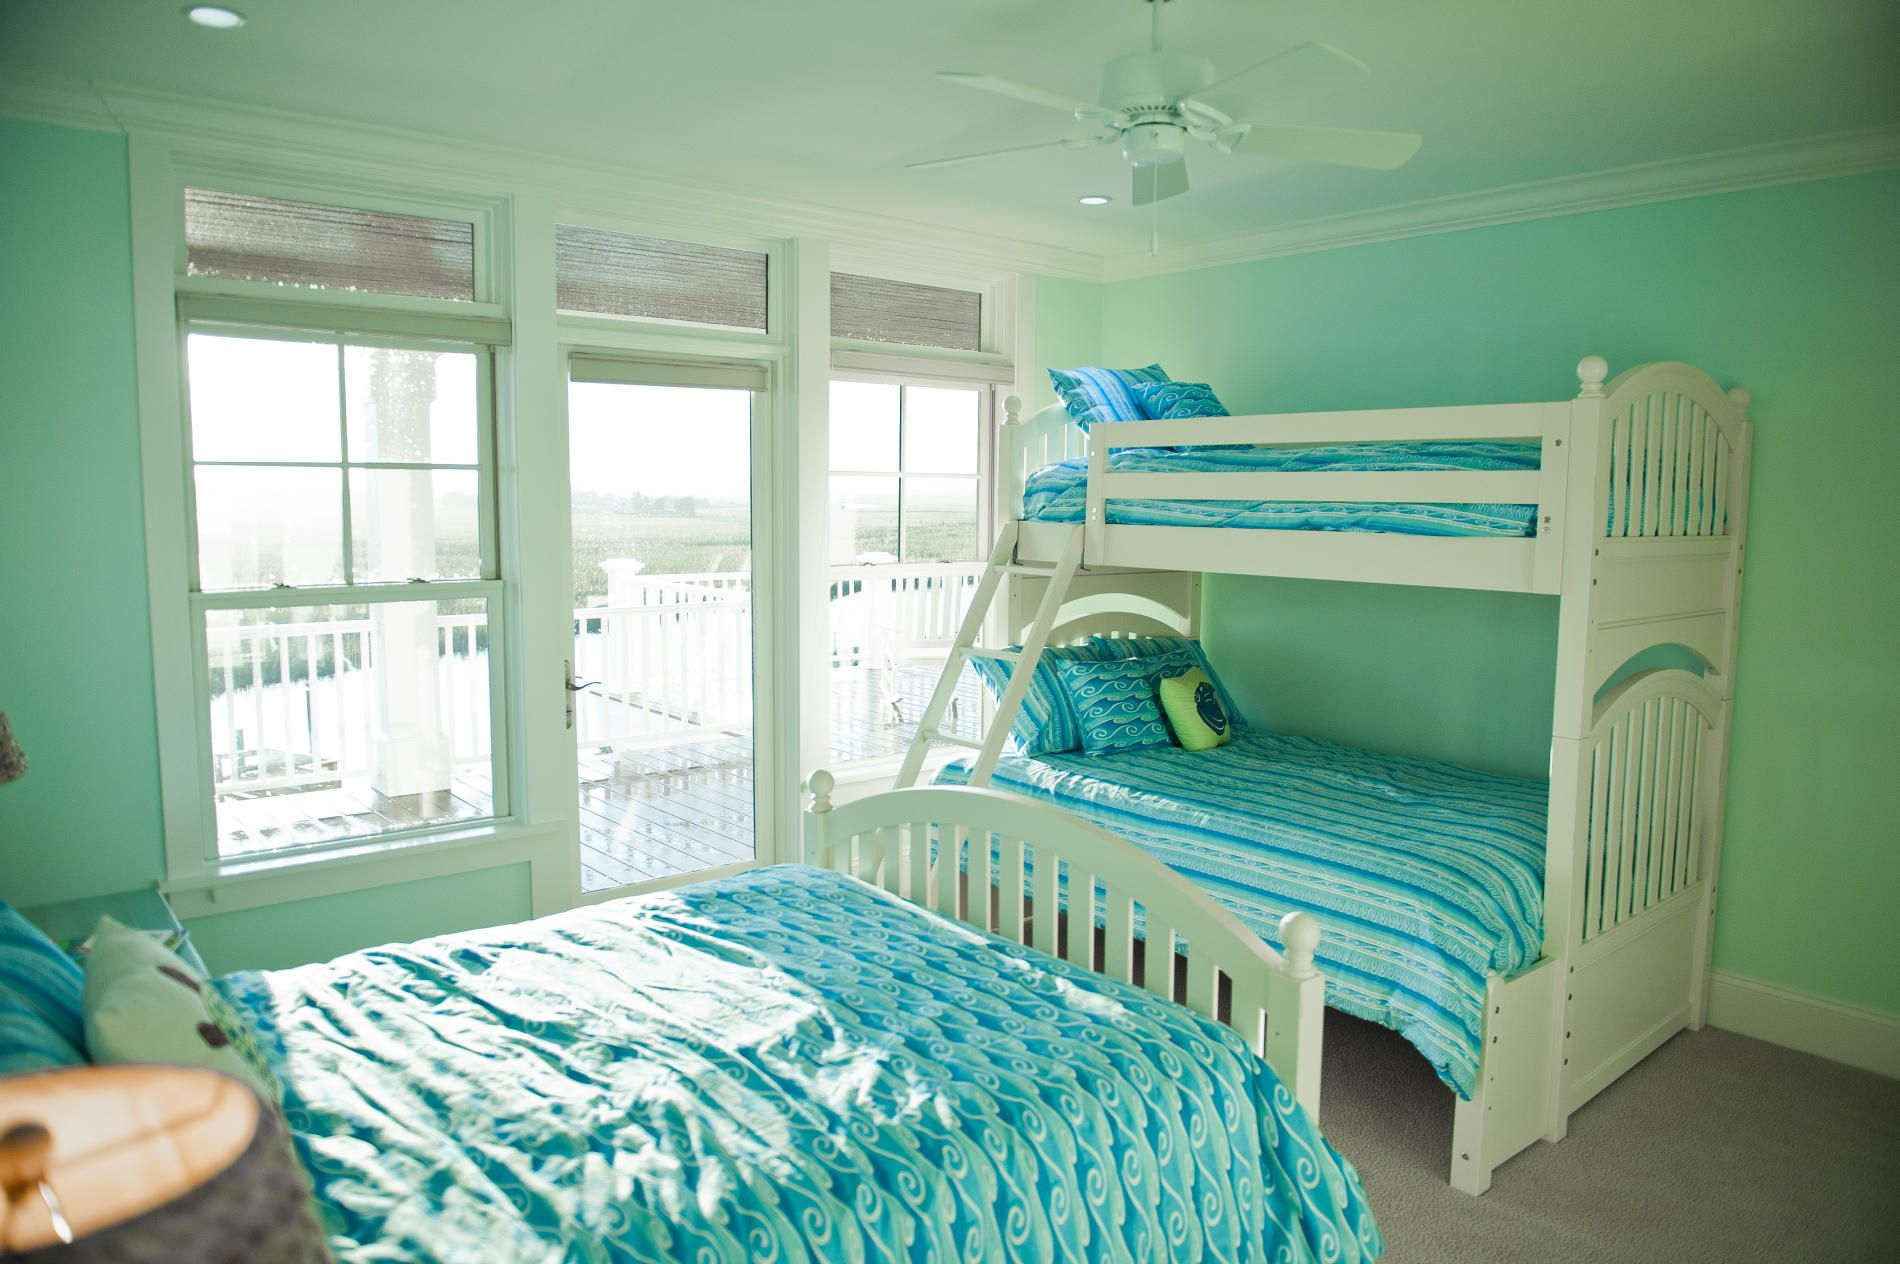 1000 images about Turquoise Aqua aquamarine blue green on Pinterest  1000  images about Turquoise Aqua. Blue Green Bedroom